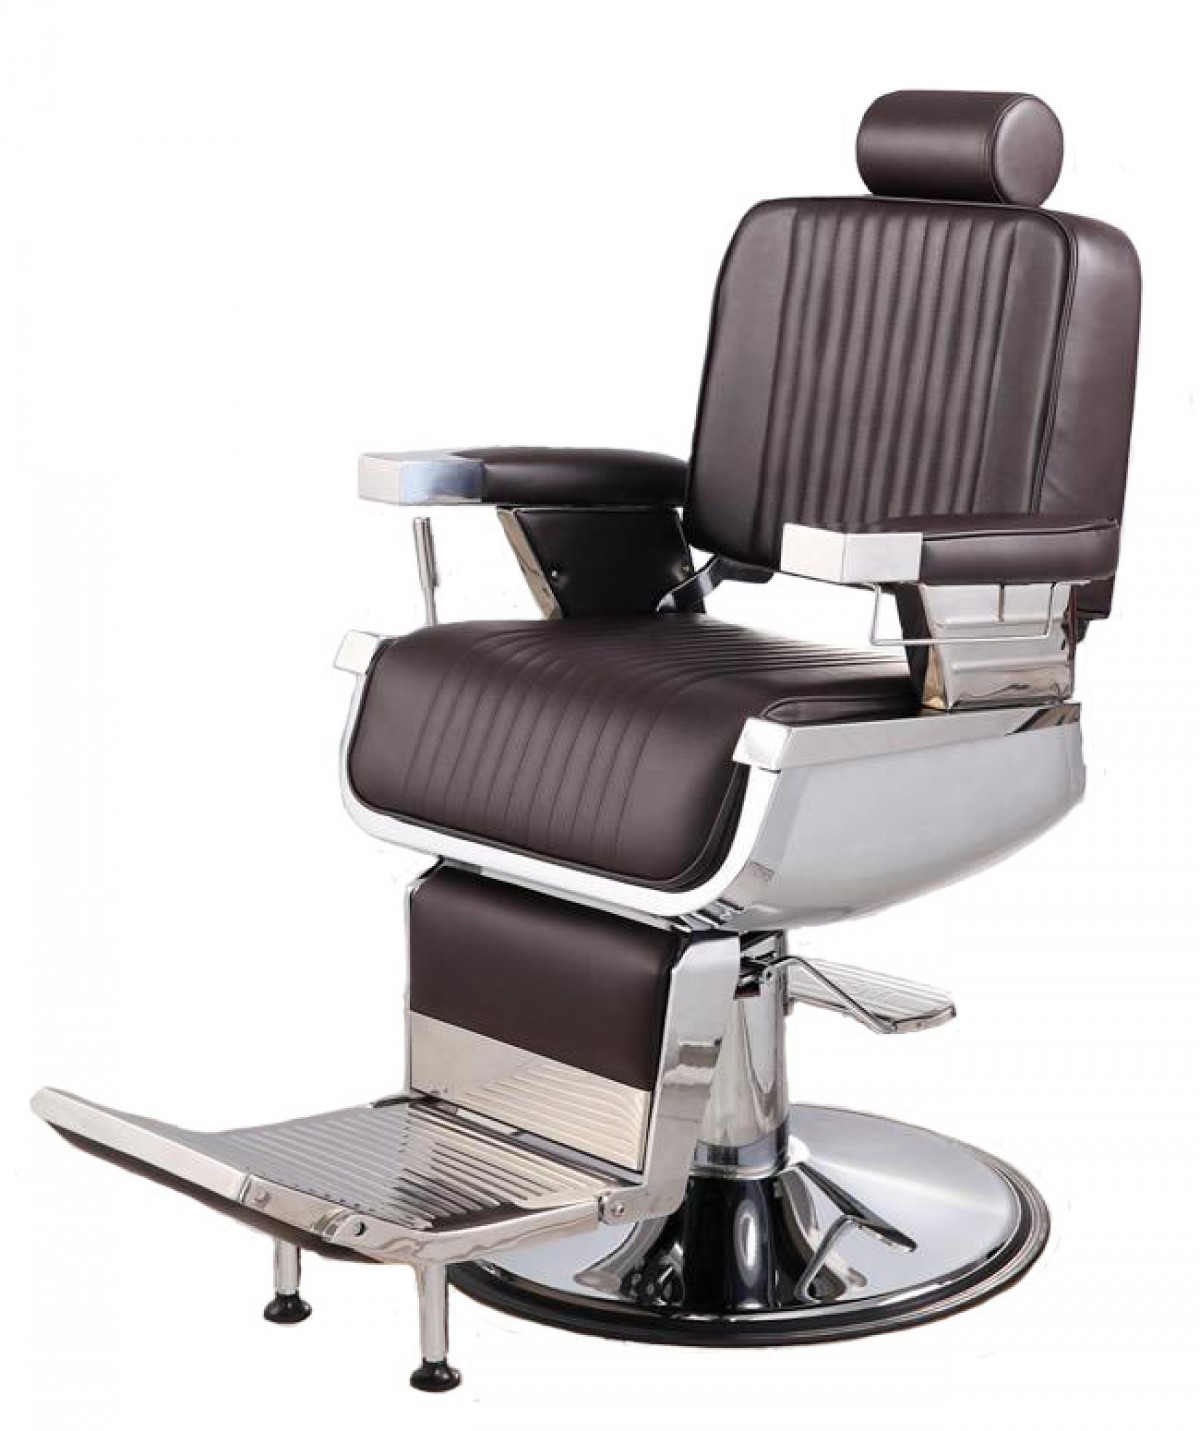 Quot Constantine Quot Barber Chair In Soft Chocolate Brown